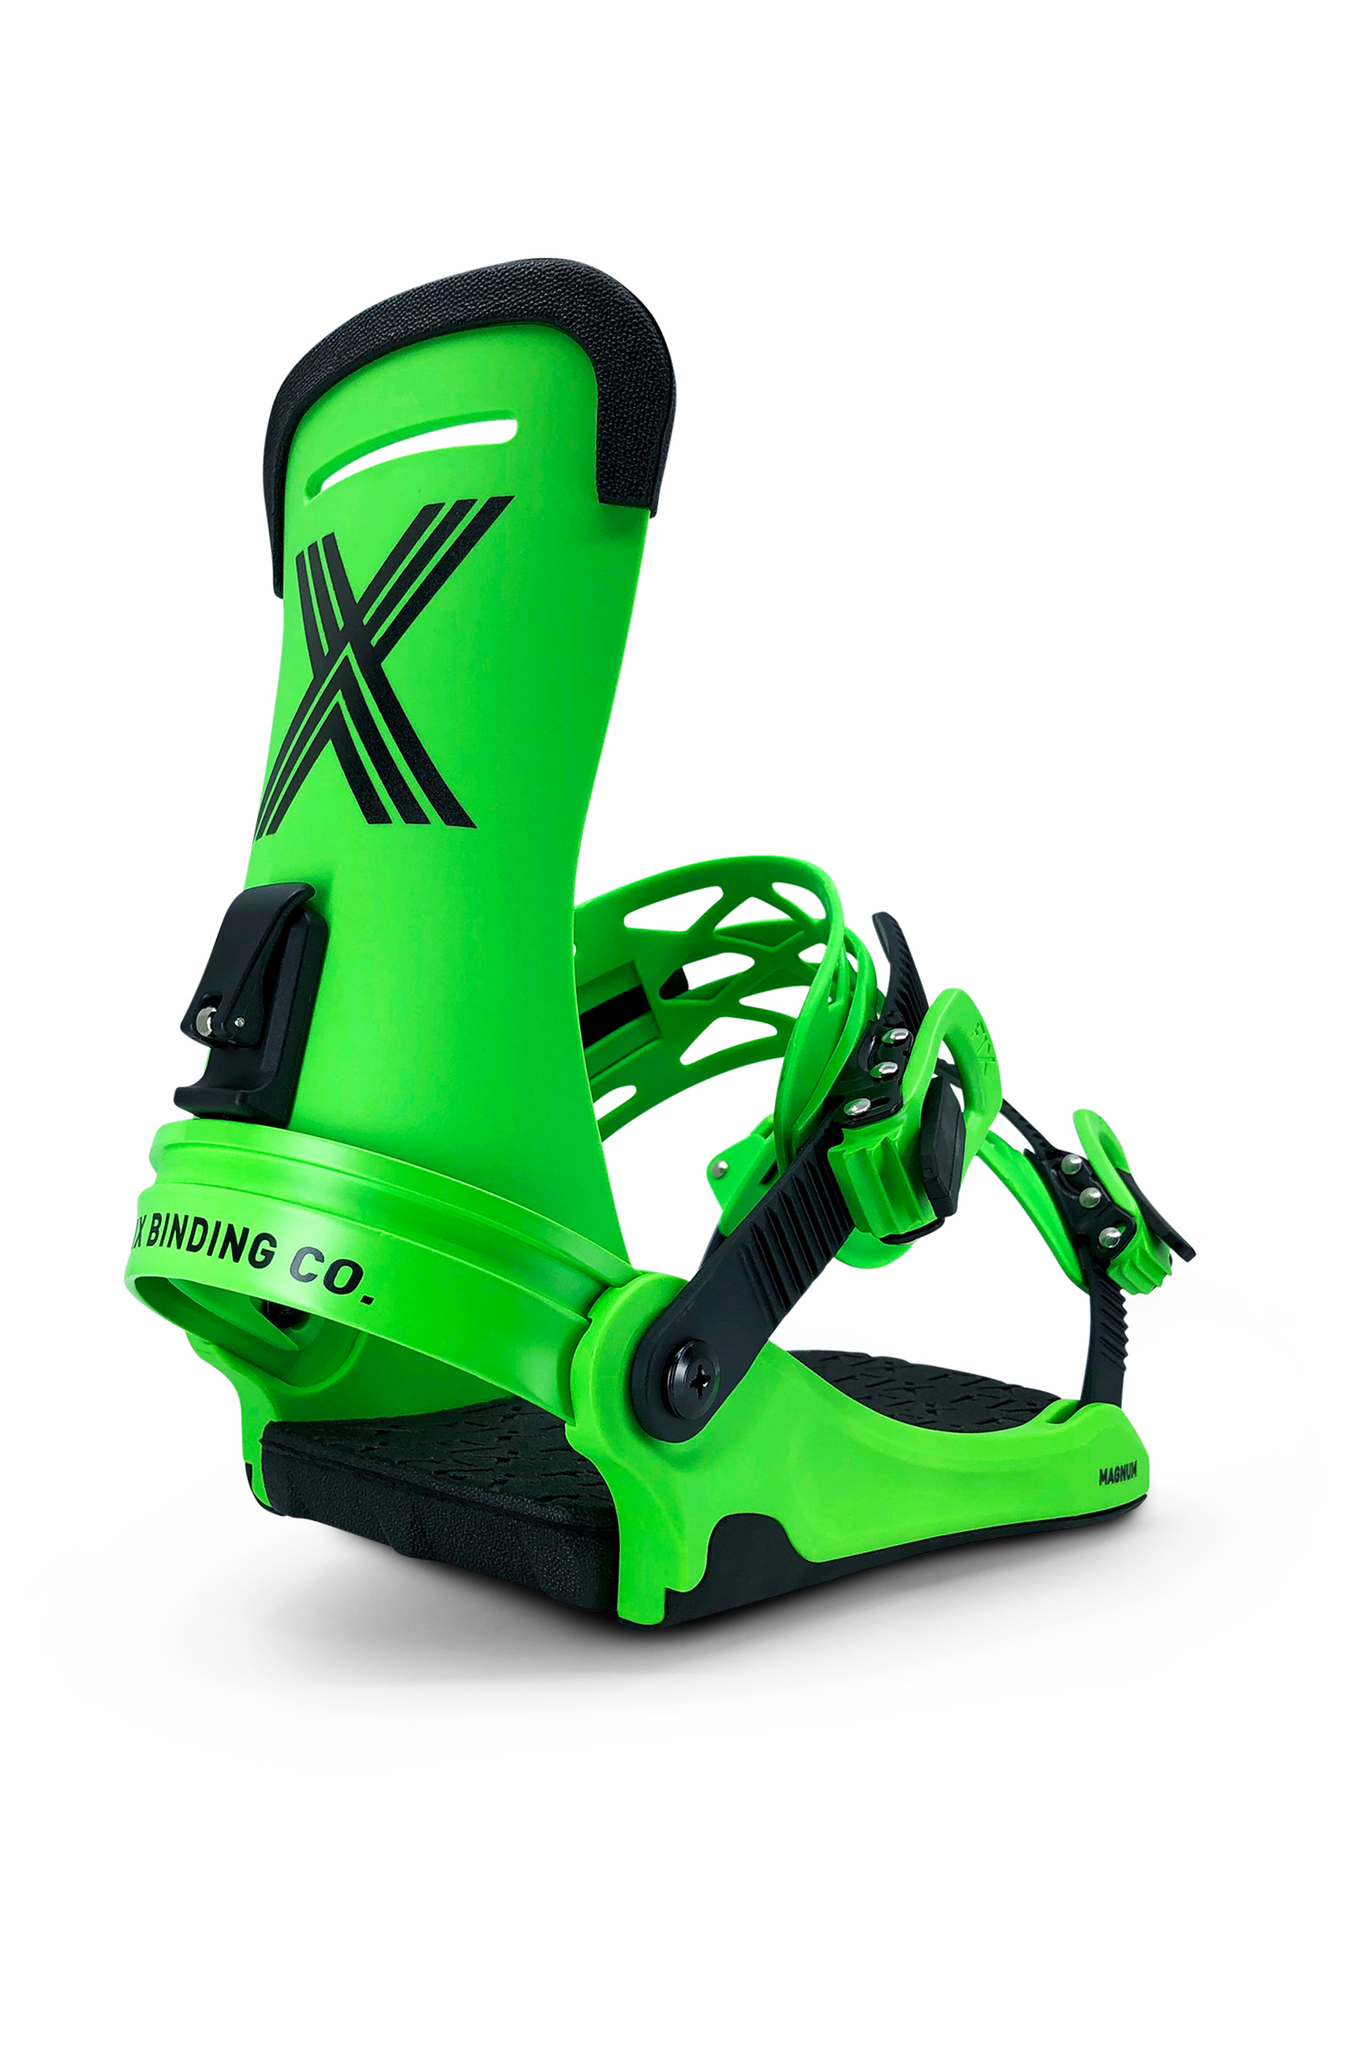 2021 FIX MAGNUM LIME BINDING